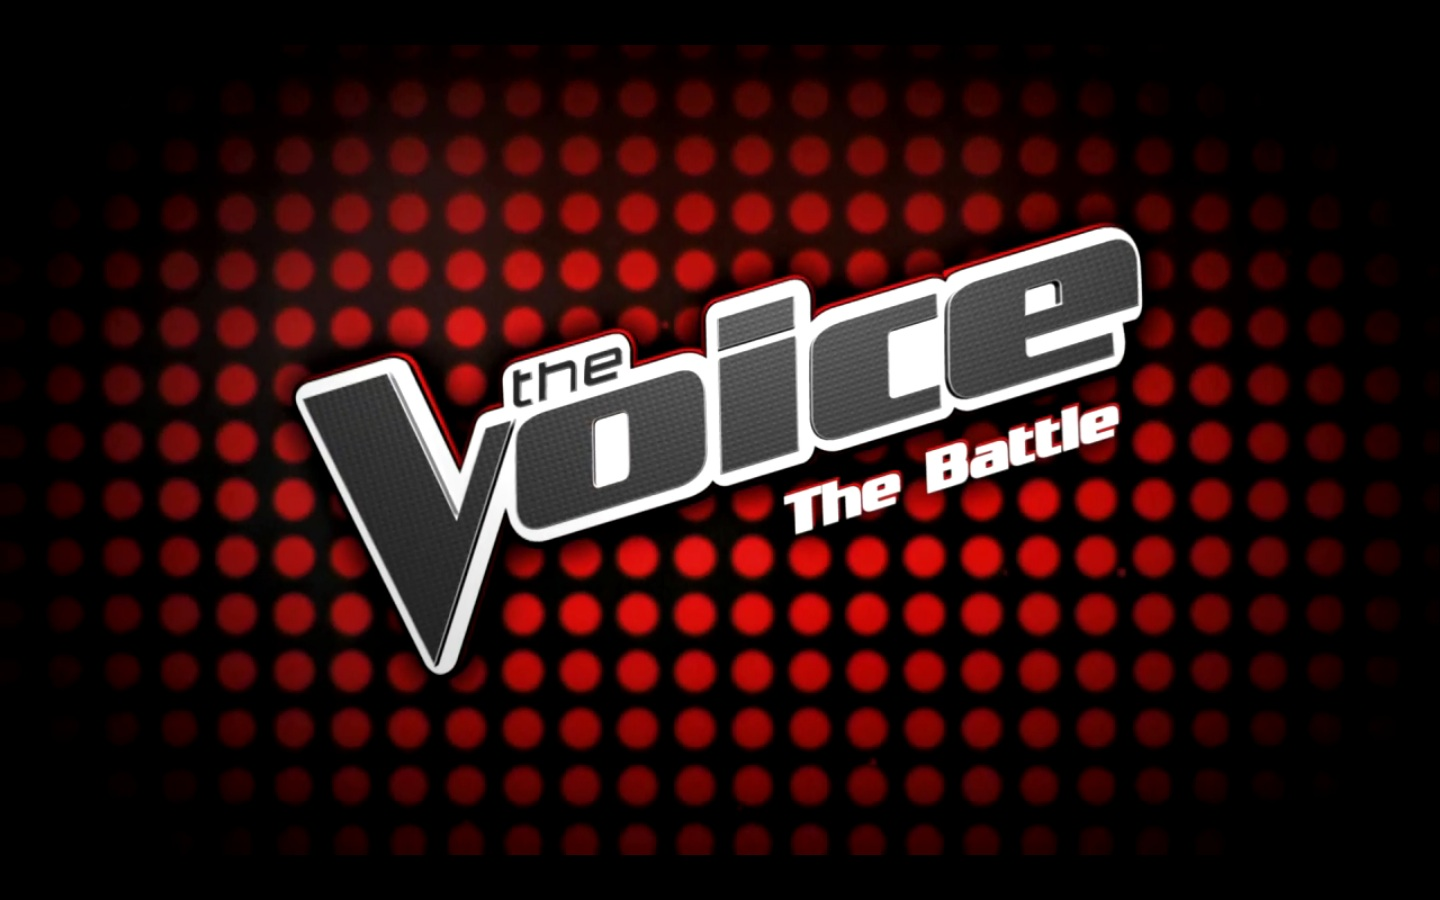 The Voice The Battle3 Jpg